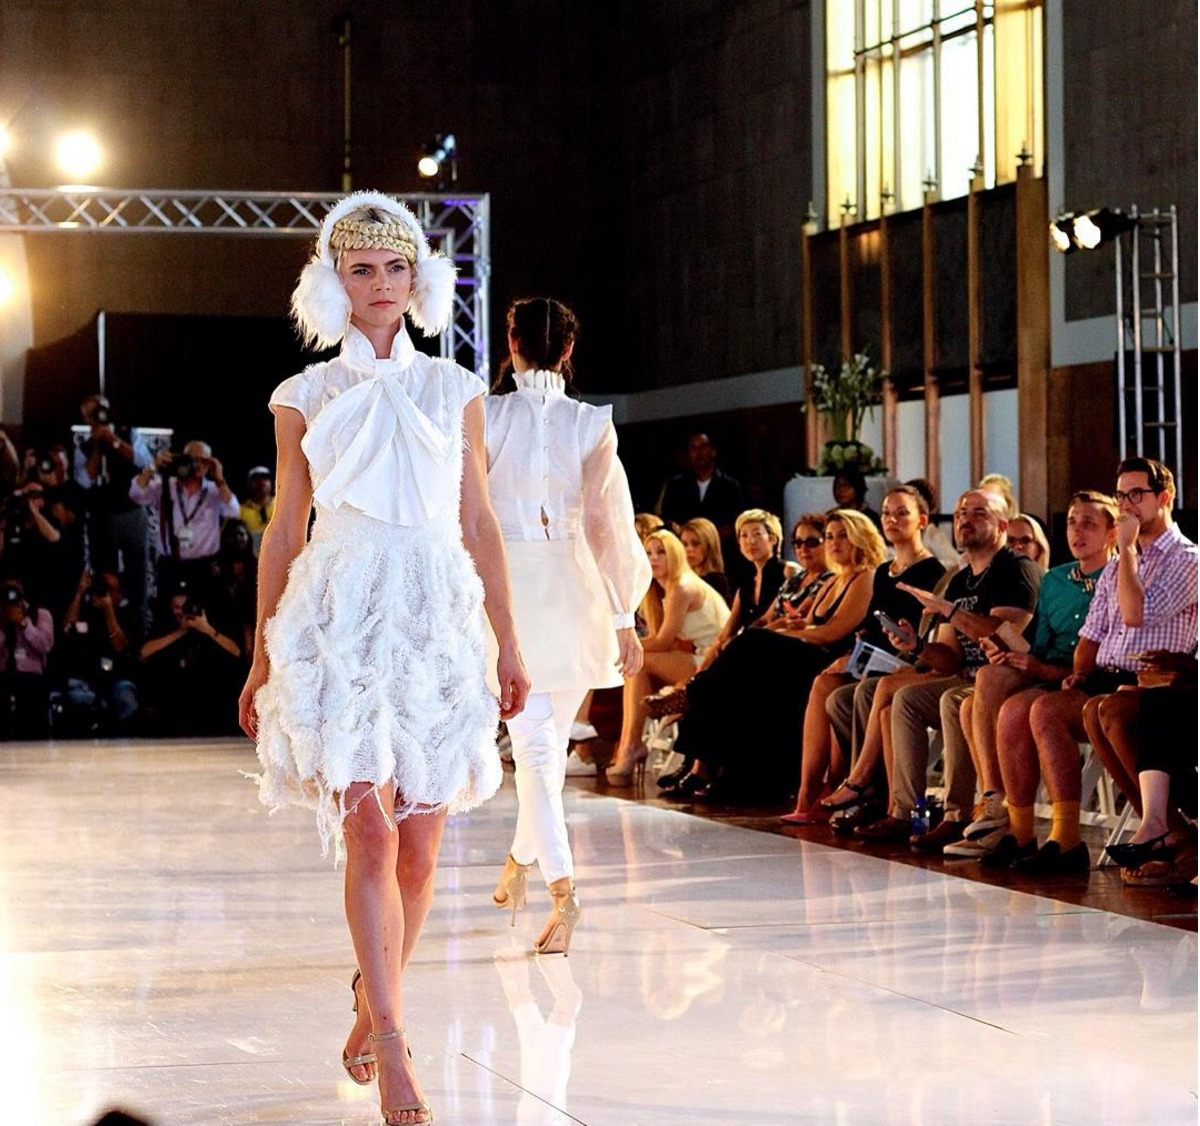 Ice queens taking their turn down the runway for the Araksi Balyan LAFW show. Luxe Group Key Stylist Eric Garza. Photo by Liz Abrams.